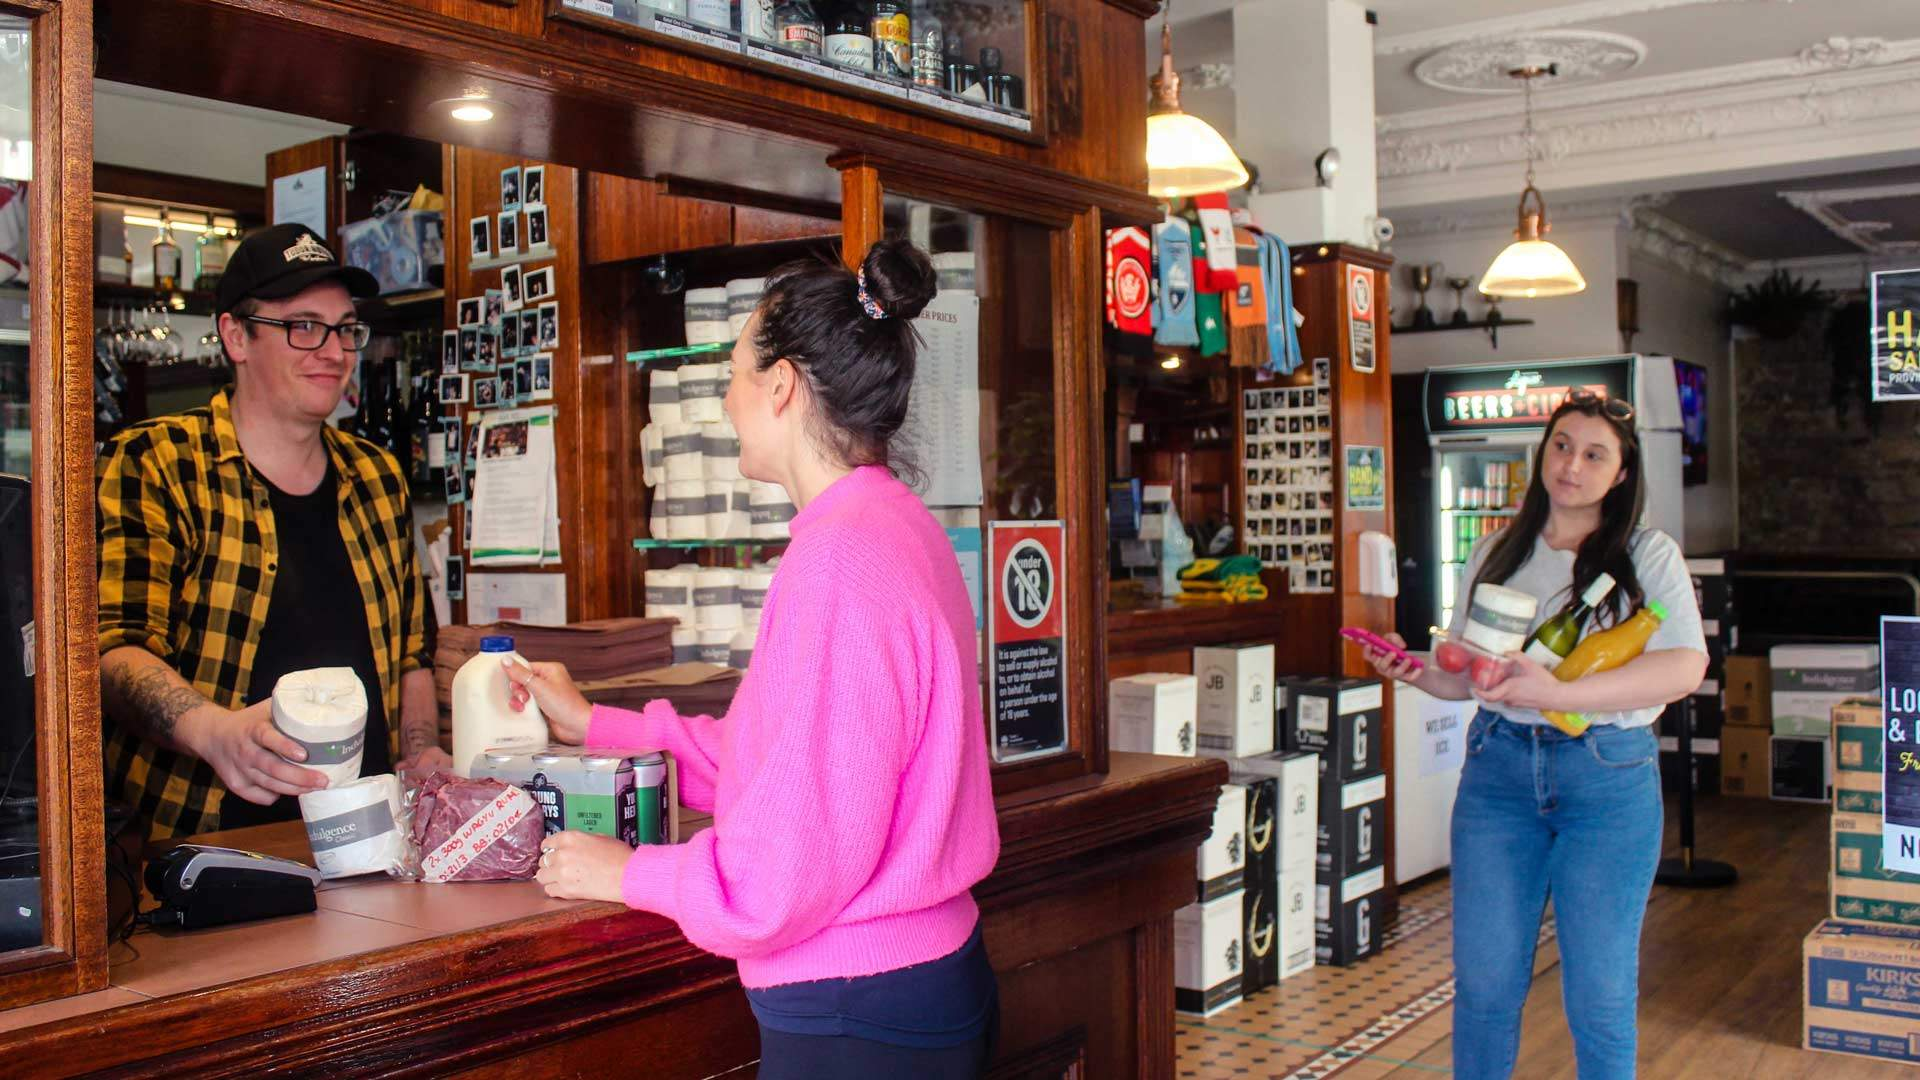 Australian Restaurants and Pubs Are Transforming Into Convenience Stores and Grocers